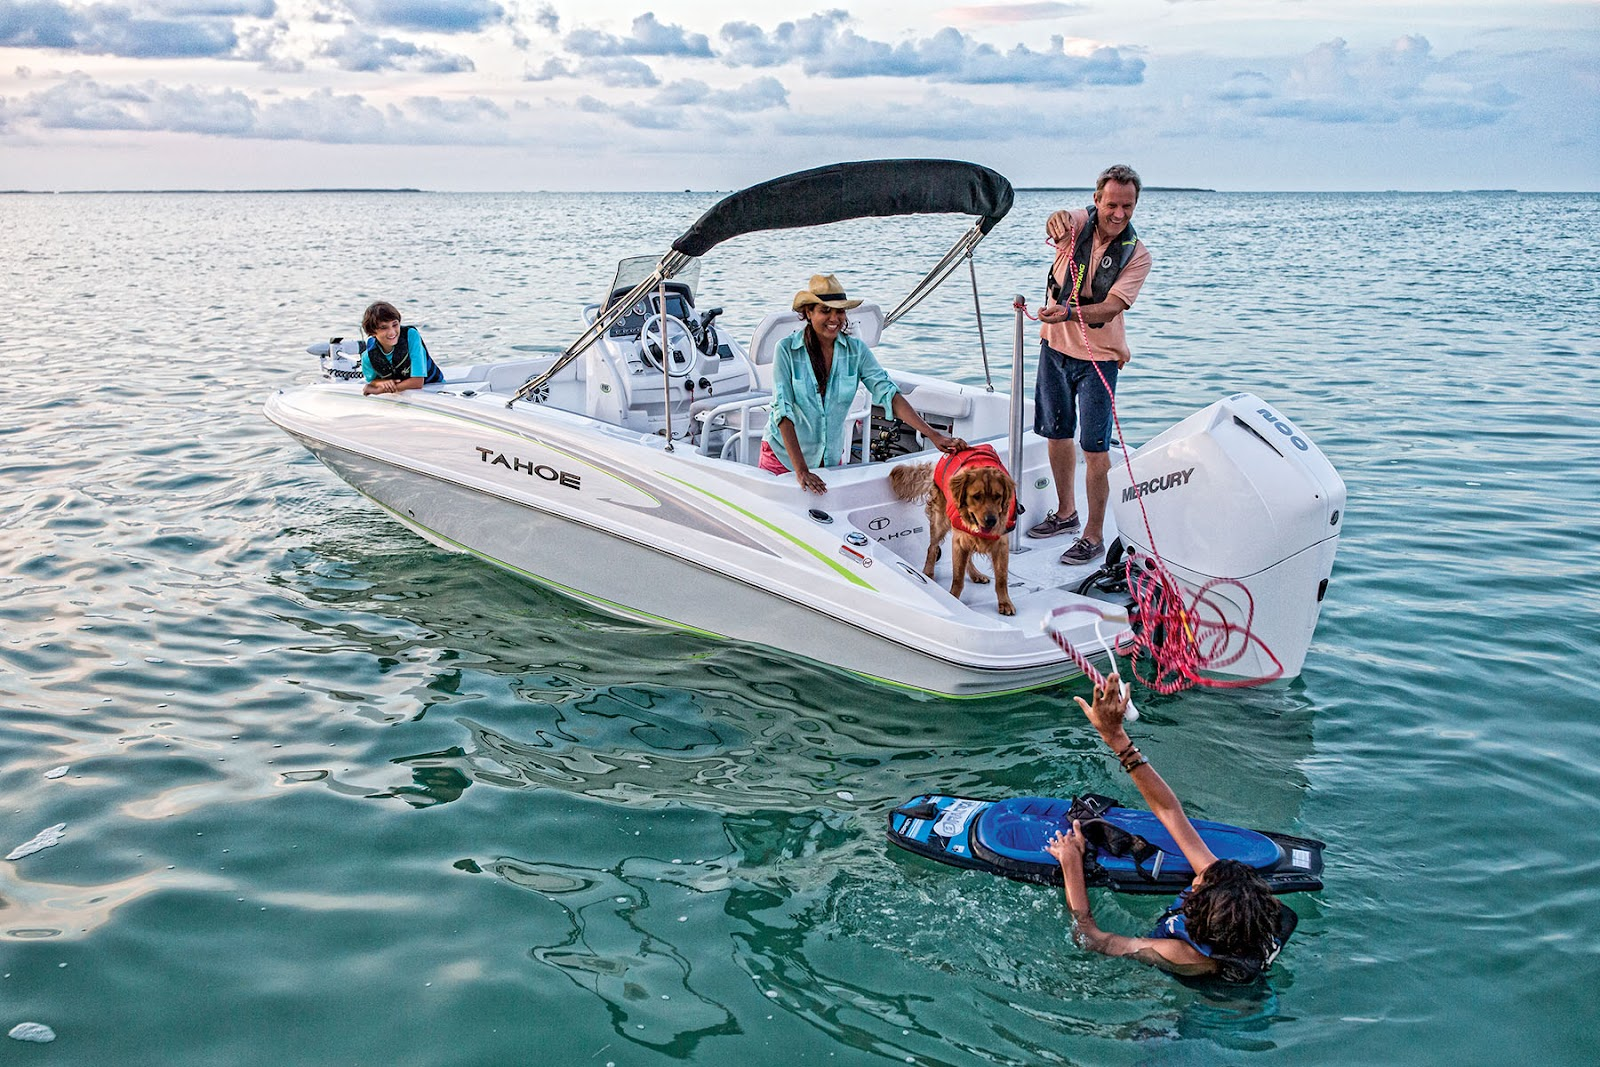 A family prepares to start some towing water sports with a Tahoe 2150 CC runabout boat in this file photo.